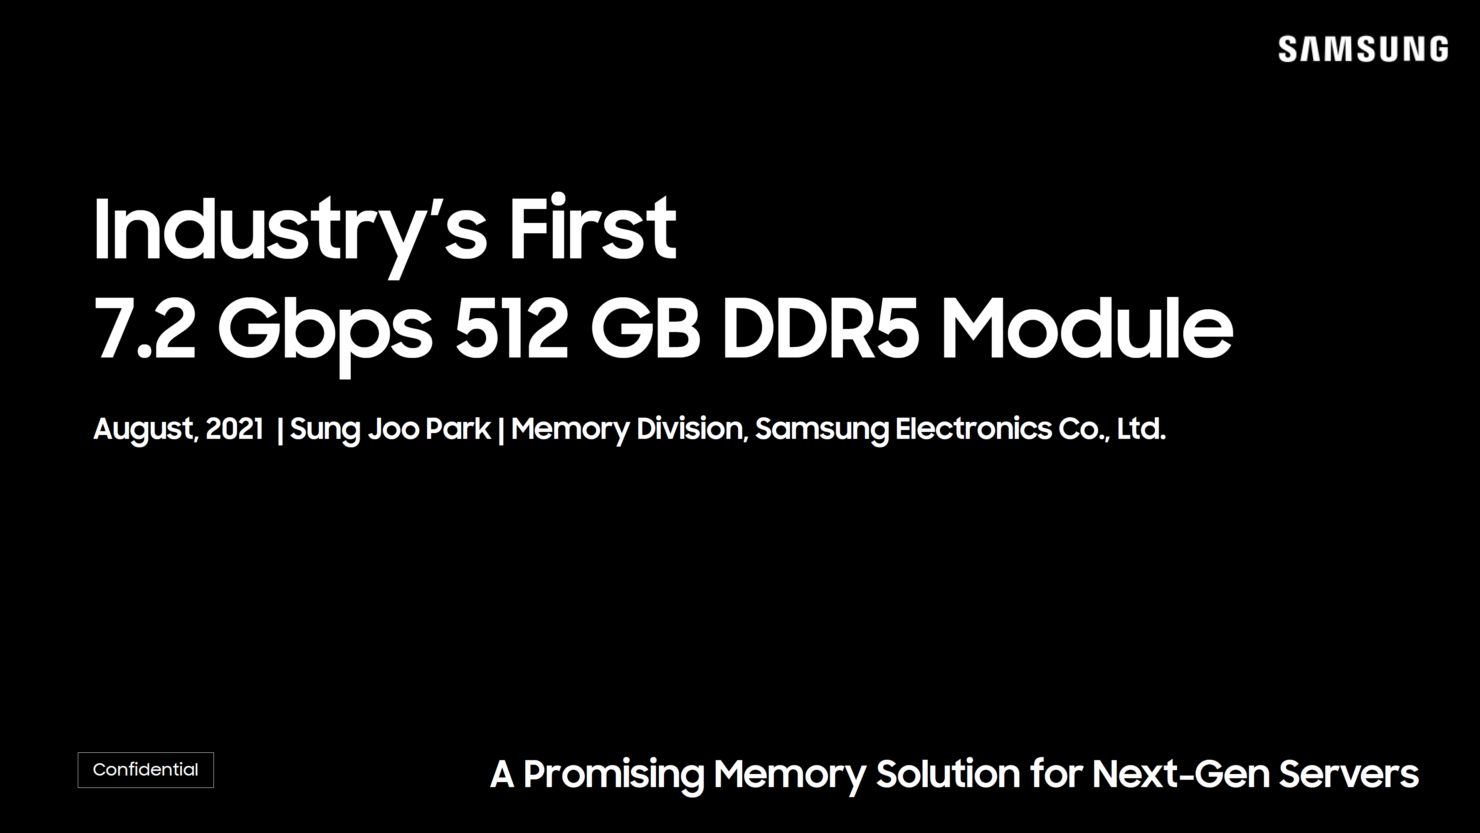 samsung-ddr5-512-gb-7-2-gbps-memory-modules-_-hotchips-33-_2